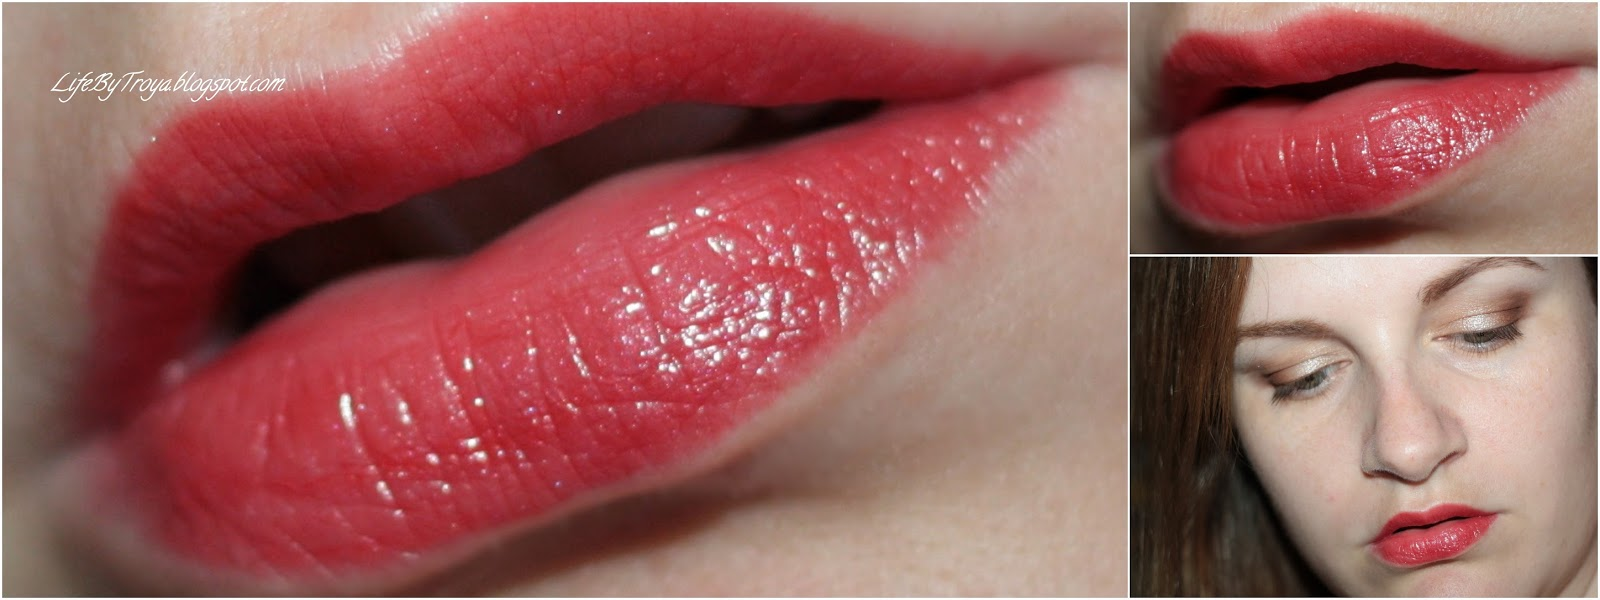 when i wear lipstick vs lip gloss Lipstick vs lip gloss: the smackdown the female population is divided between lip gloss lovers and lipstick devotees but new advances in both formulations will make you want to swing both ways.